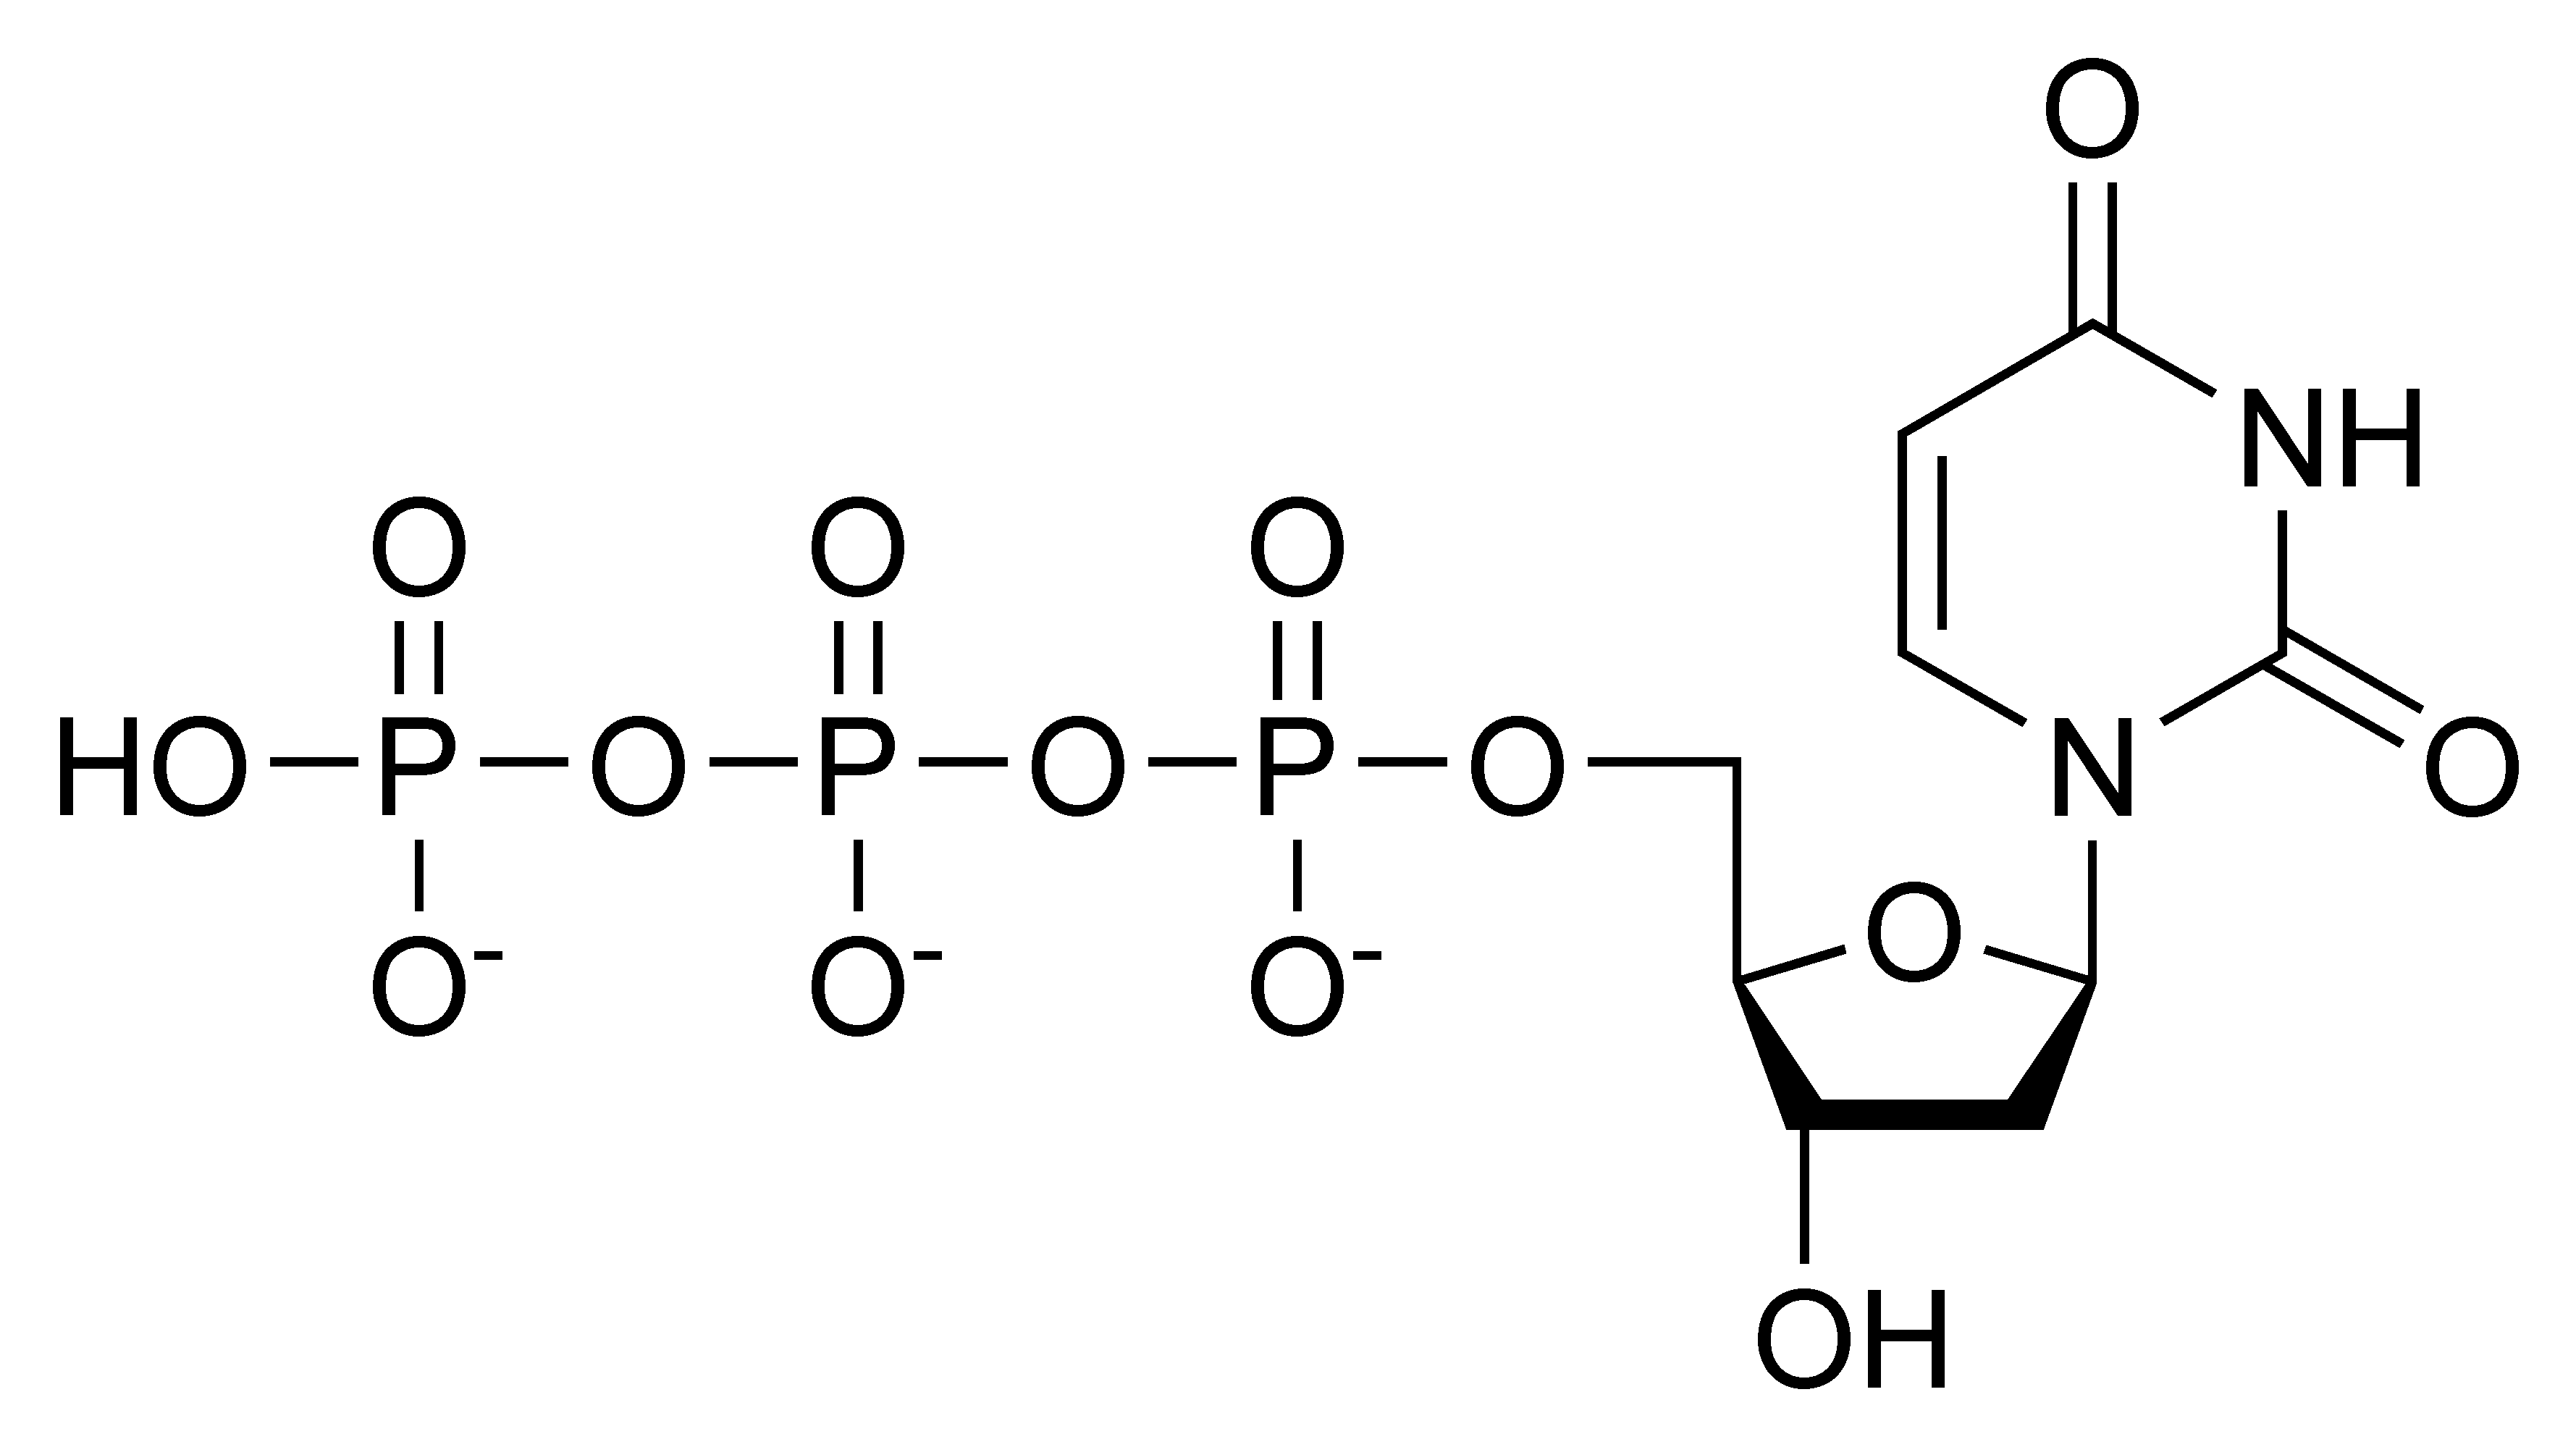 Chemical structure of deoxyuridine triphosphate